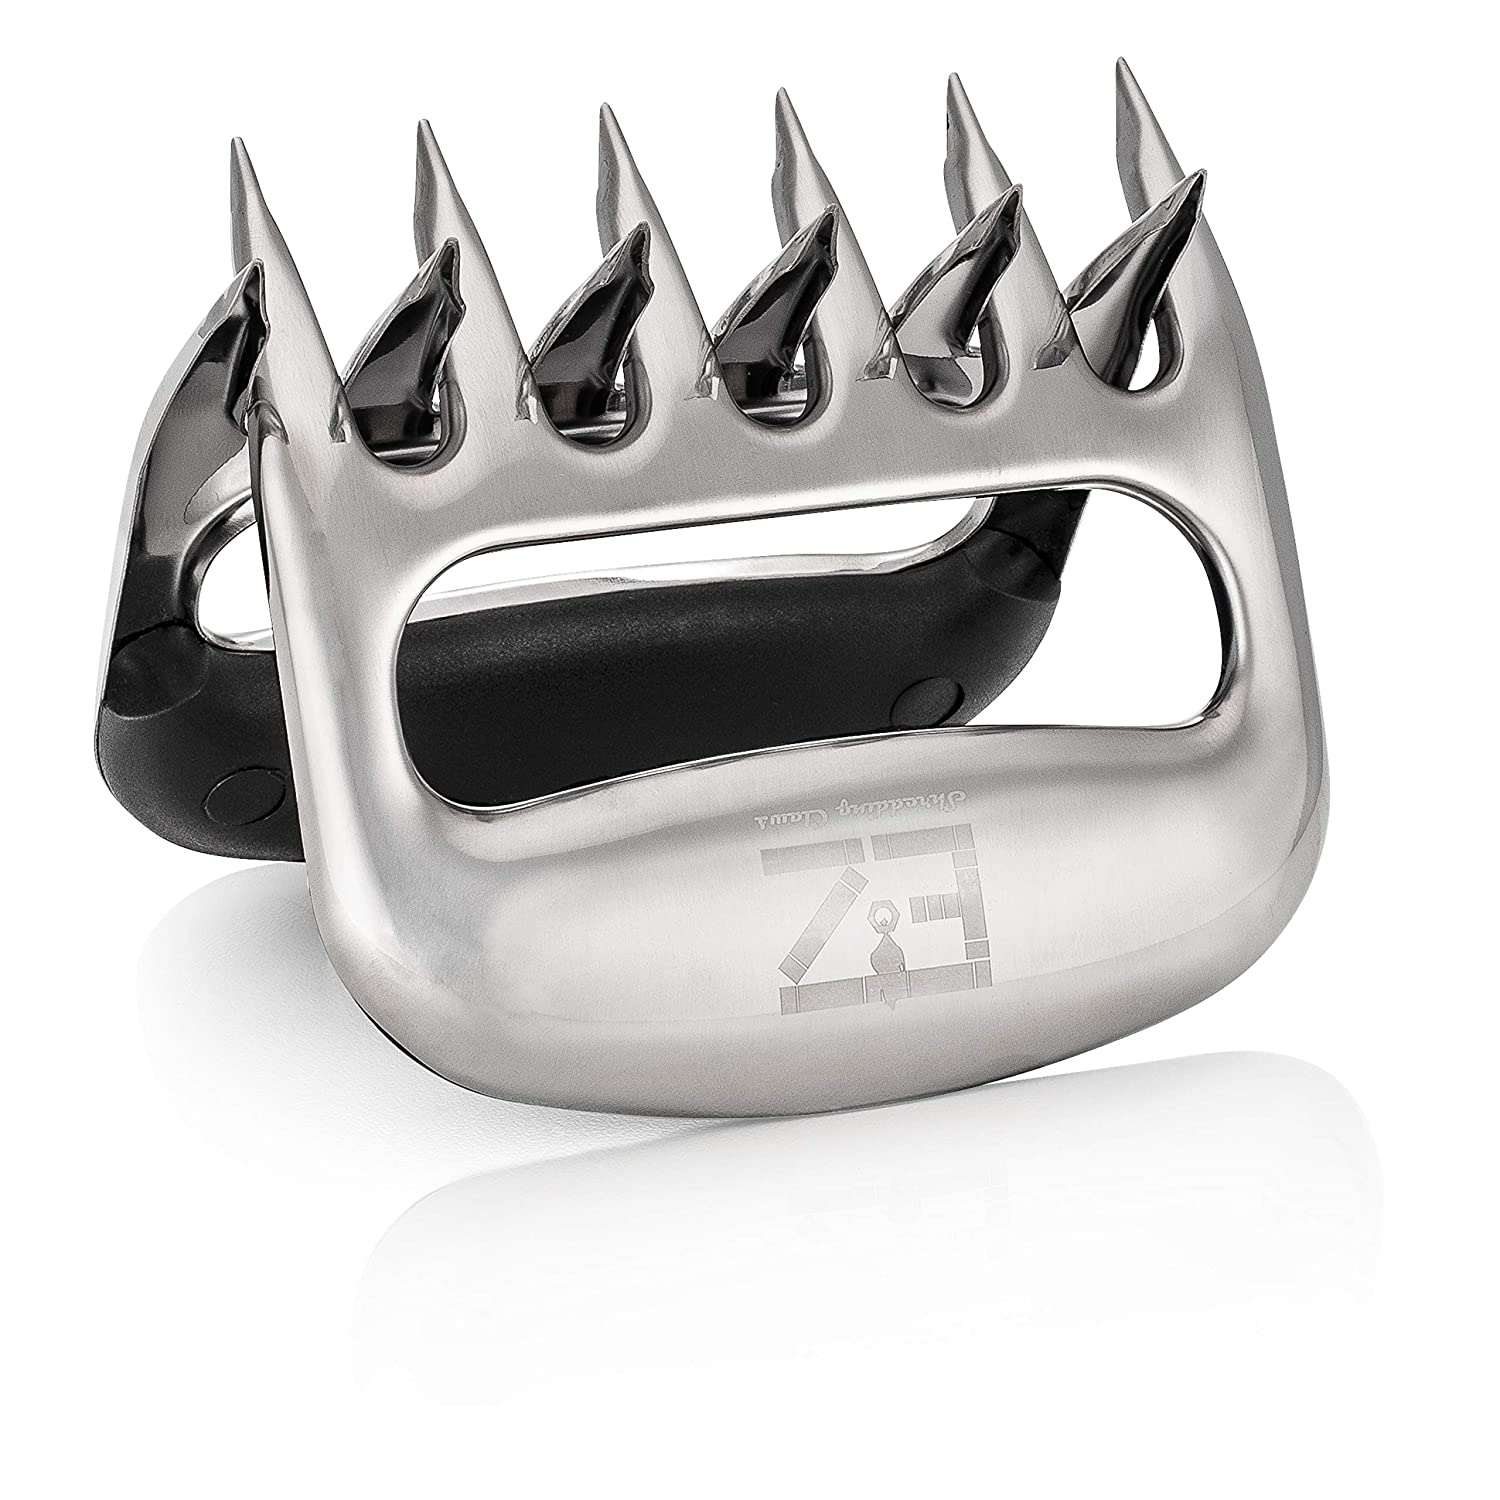 B07R11NSRN EZ Shredding Claws BBQFAM Stainless Steel Bear Claw Meat Shredders for BBQ. Perfect for shredding Pulled Pork, Poultry or just handling HOT Bulky Foods. 81Tp9mItaaL